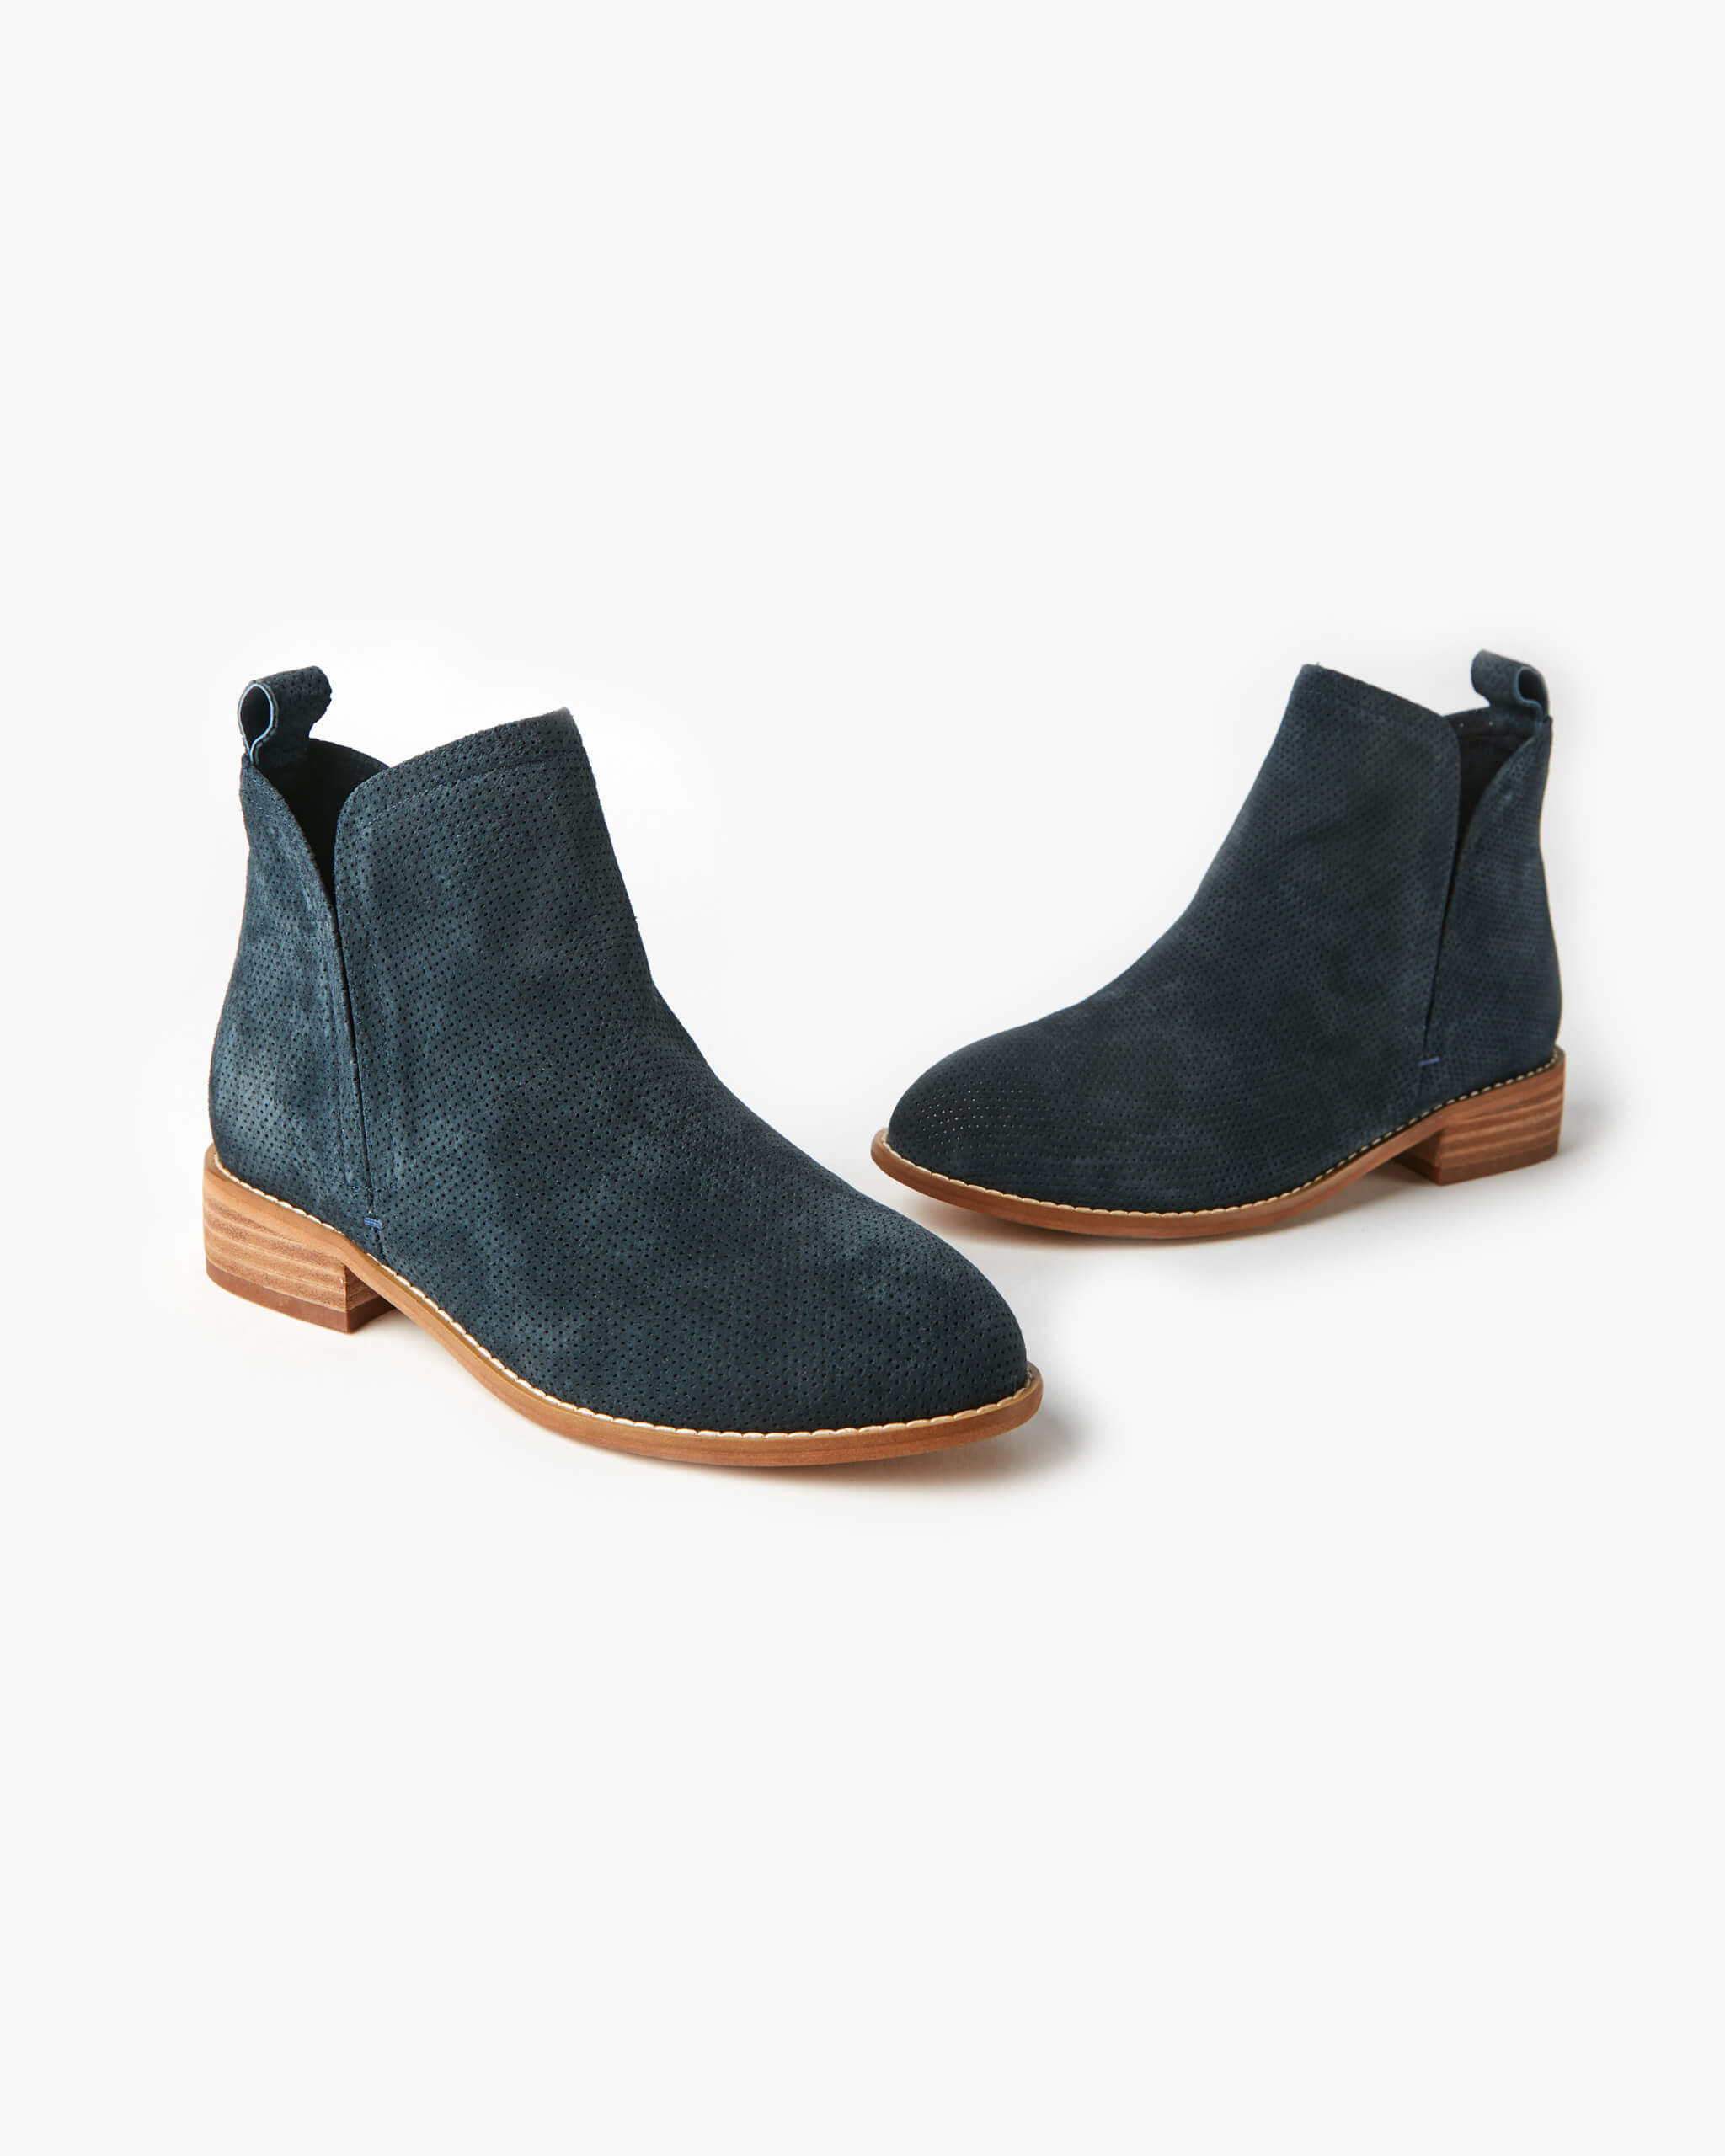 Douglas Leather Boot - Navy Nubuck